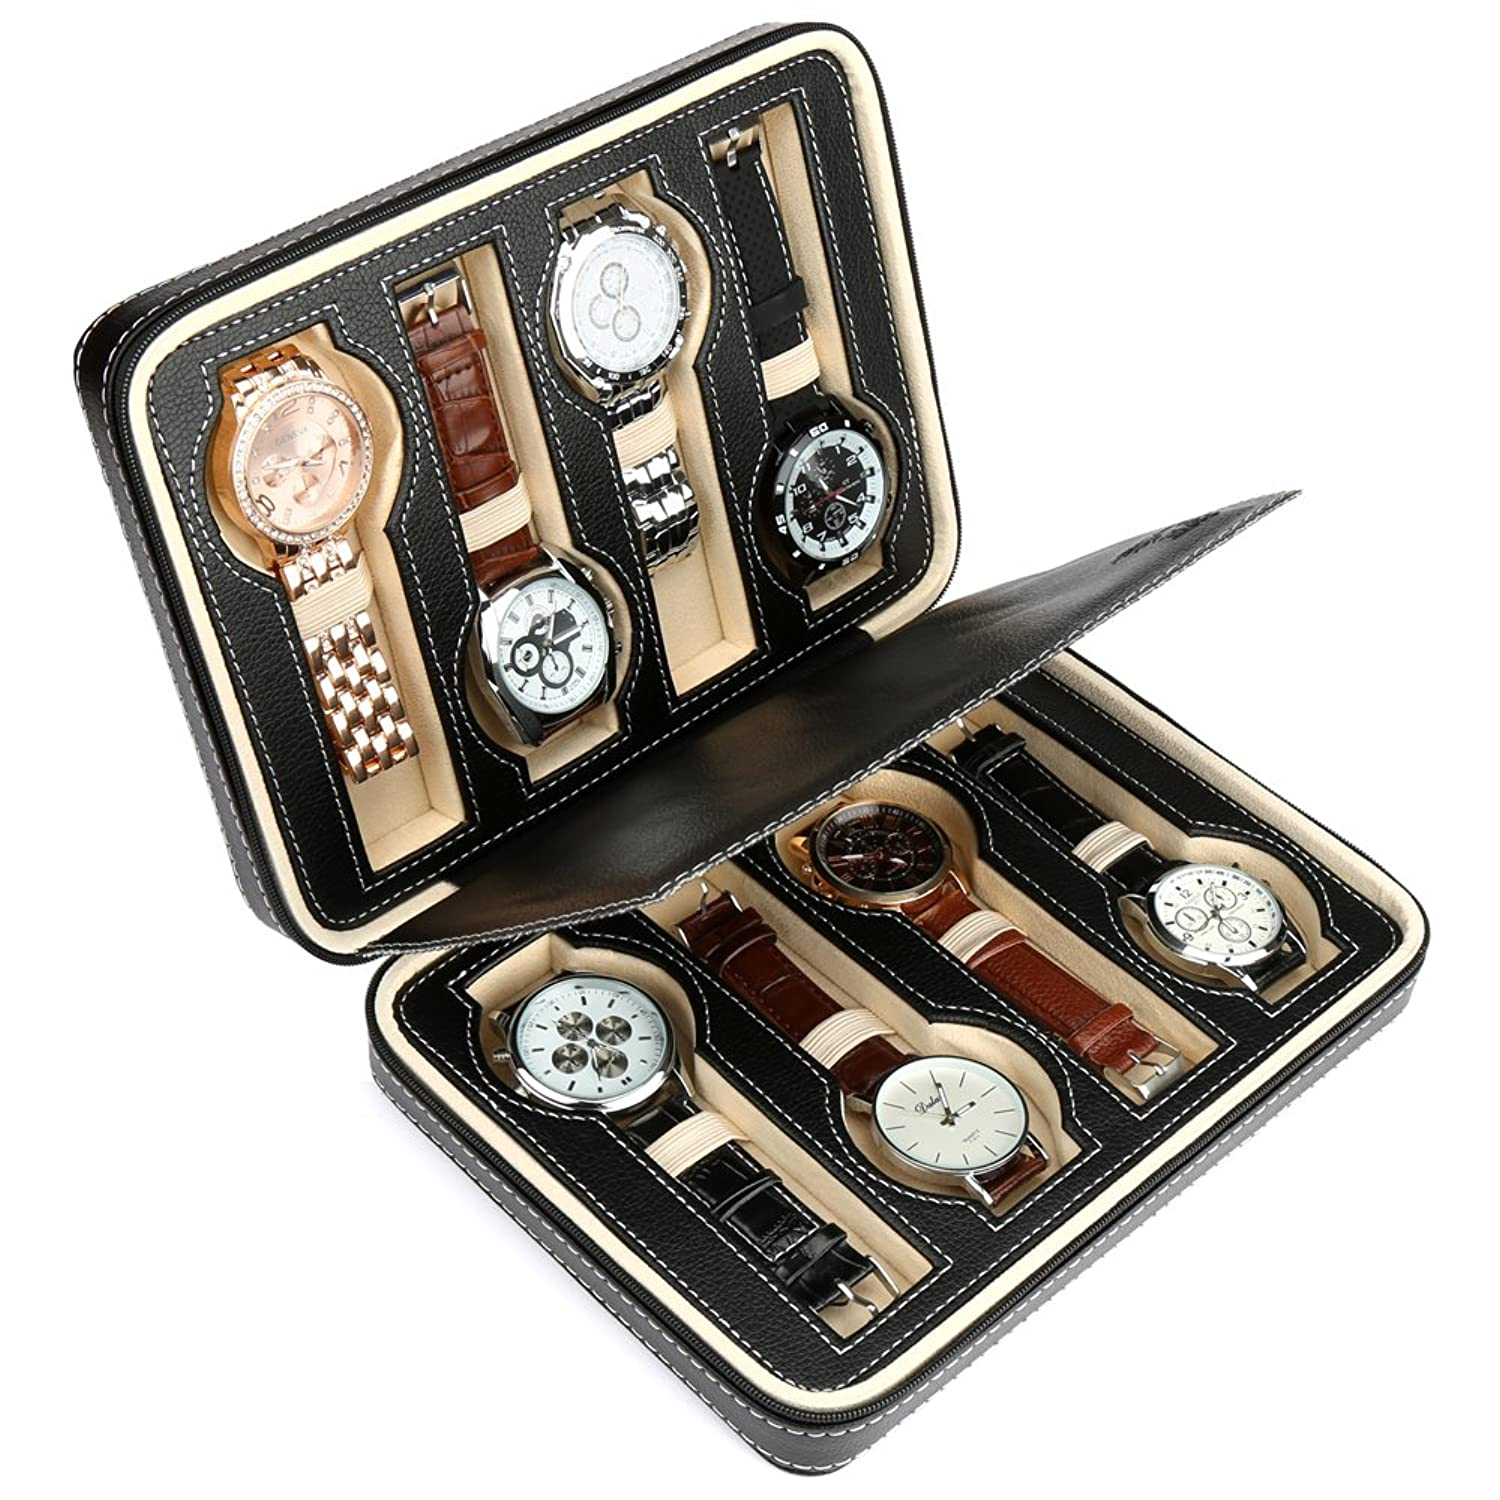 Best Watch Storage Case Reviews 2018-2019 cover image